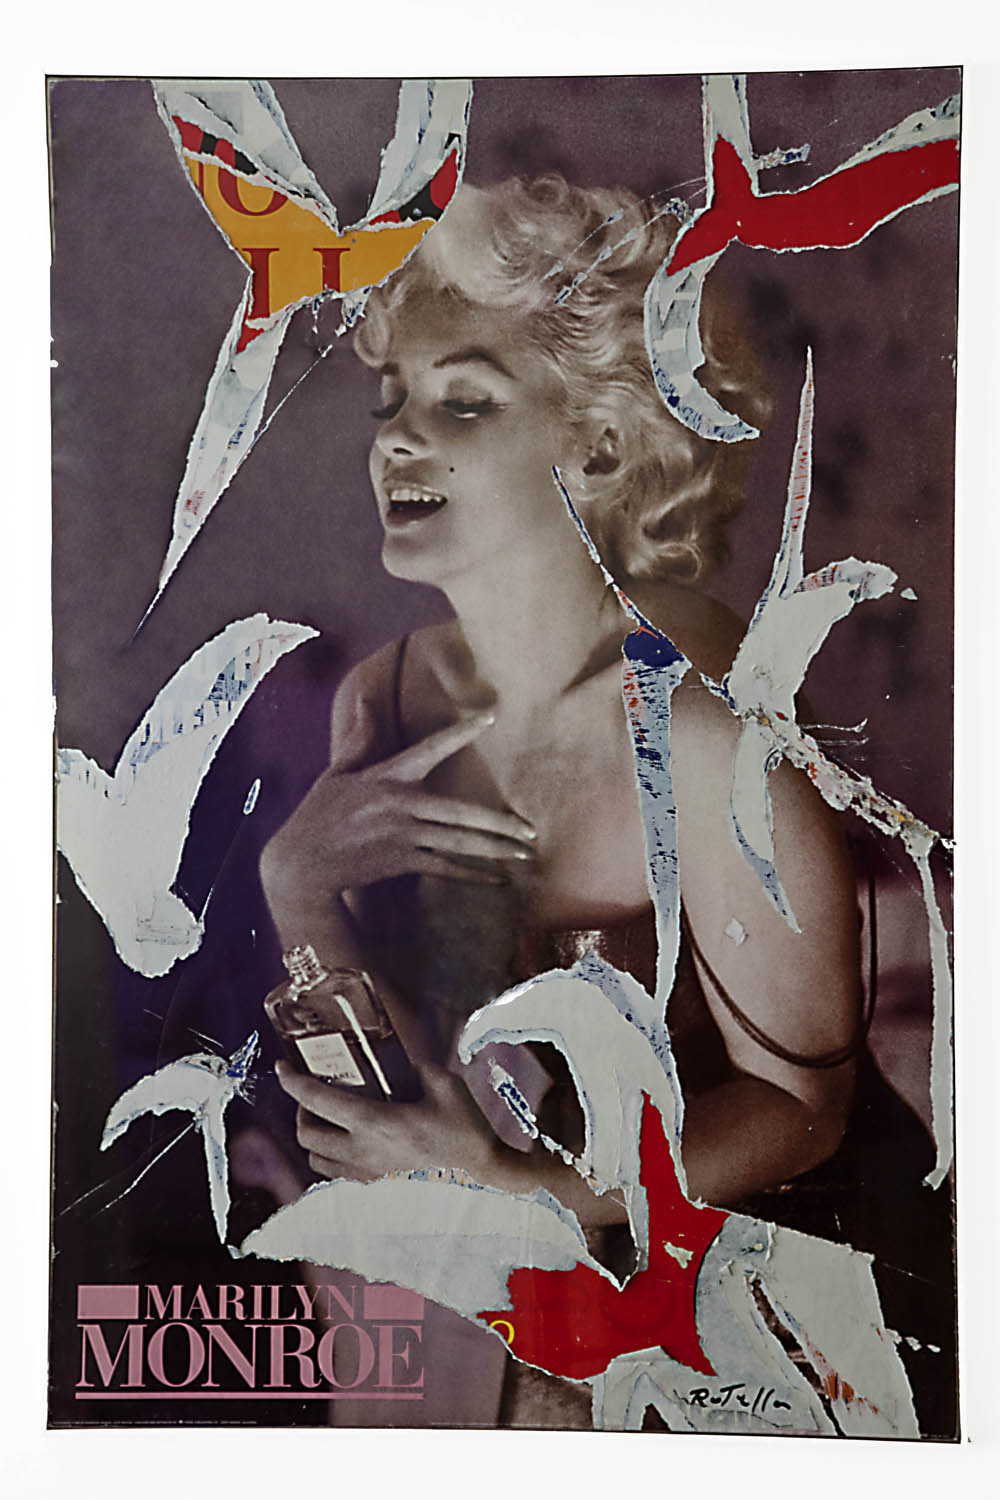 ©Mimmo Rotella, Il profumo di Marilyn, decollage